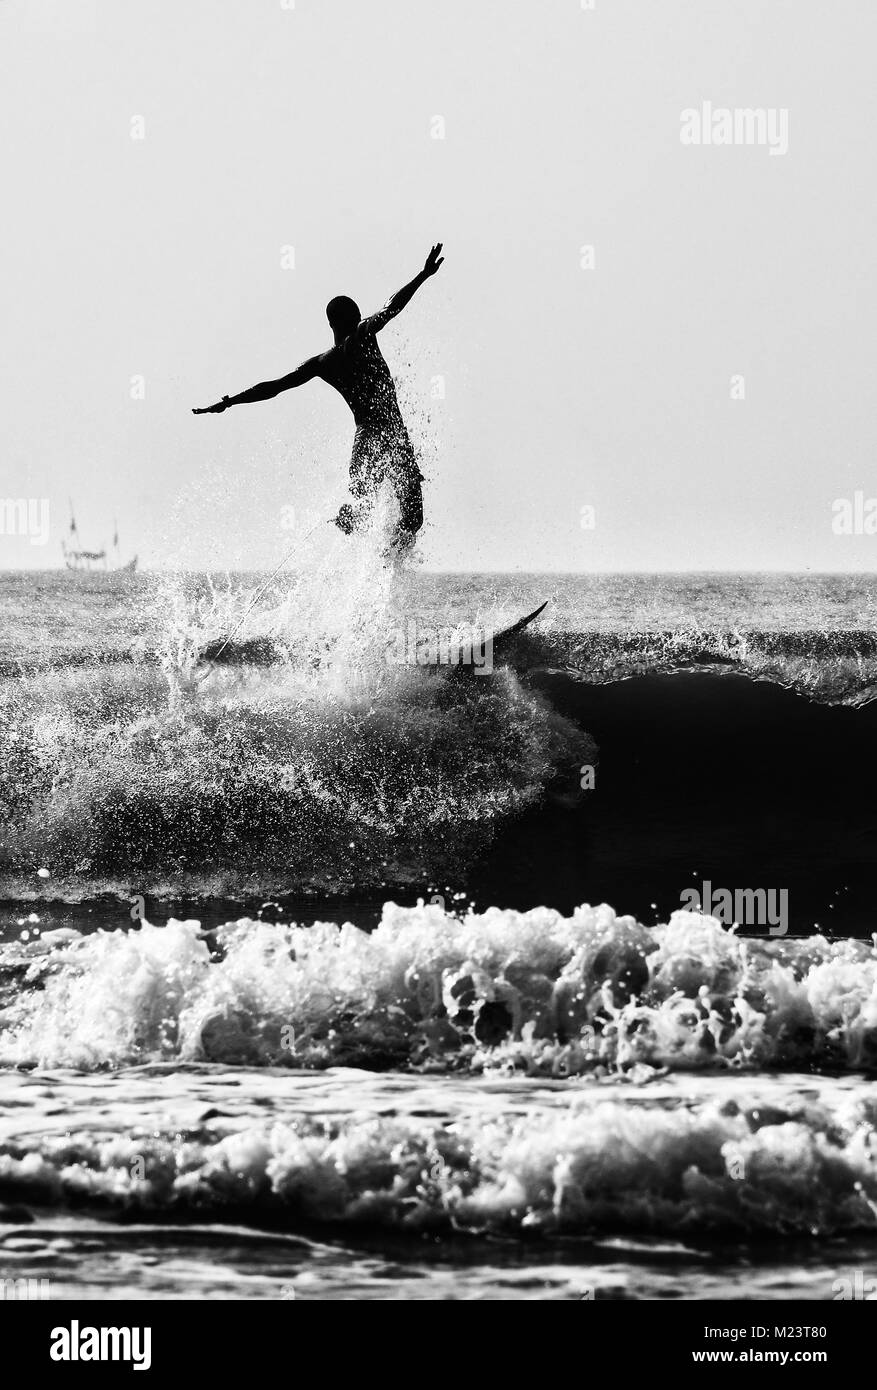 Surfer in Ghana - Stock Image